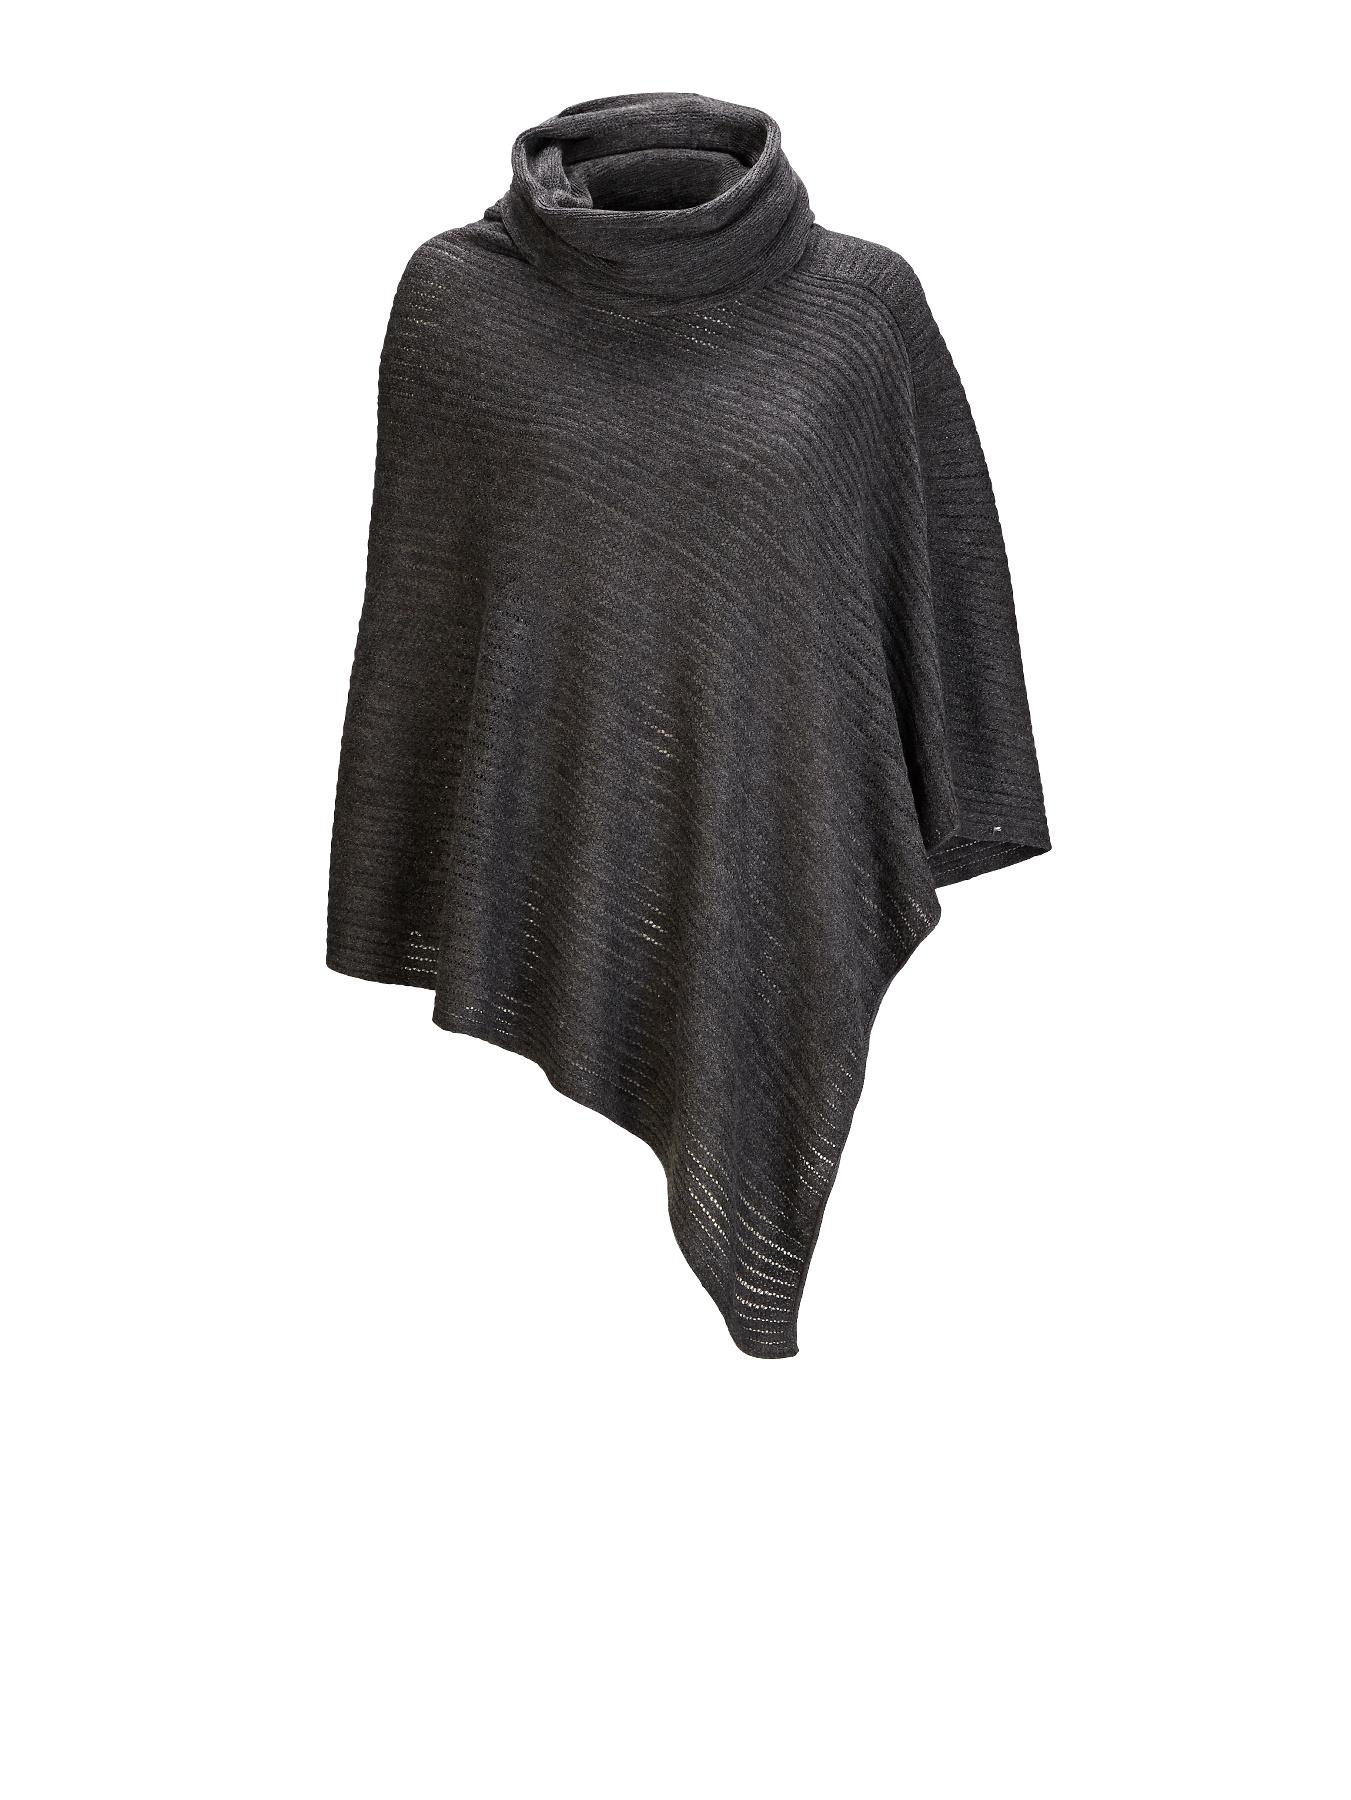 Cowl Neck Poncho Cape - Grey, Grey